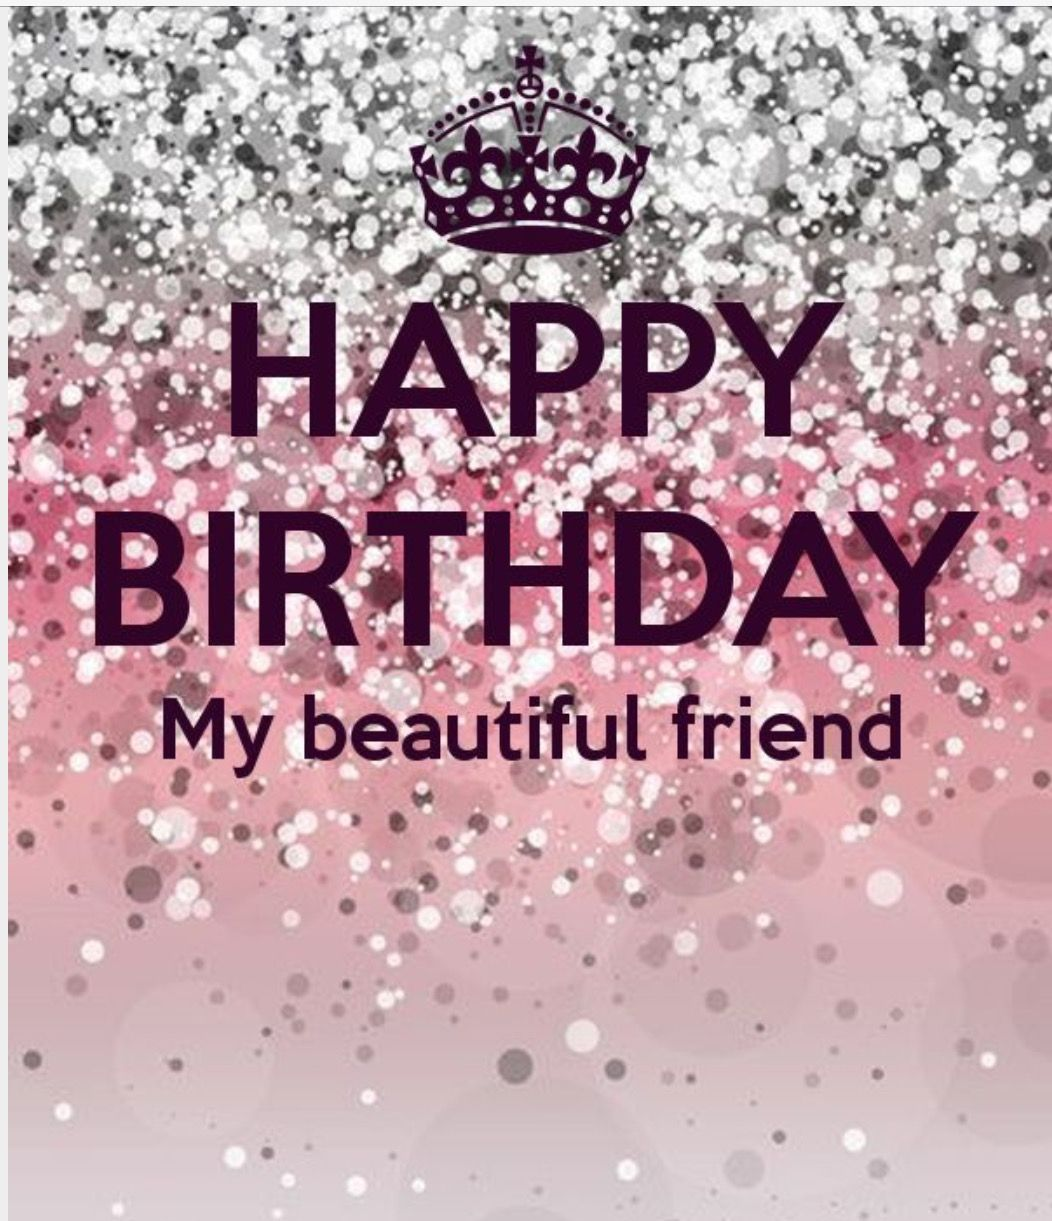 Double Arrange A Party Pin By Barb Oberle On Celebrations Pinterest Happy Birthday How About A Way To Wish Your Friend Happy Well Just Usese Birthday Print A Card gifts Happy Birthday My Beautiful Friend